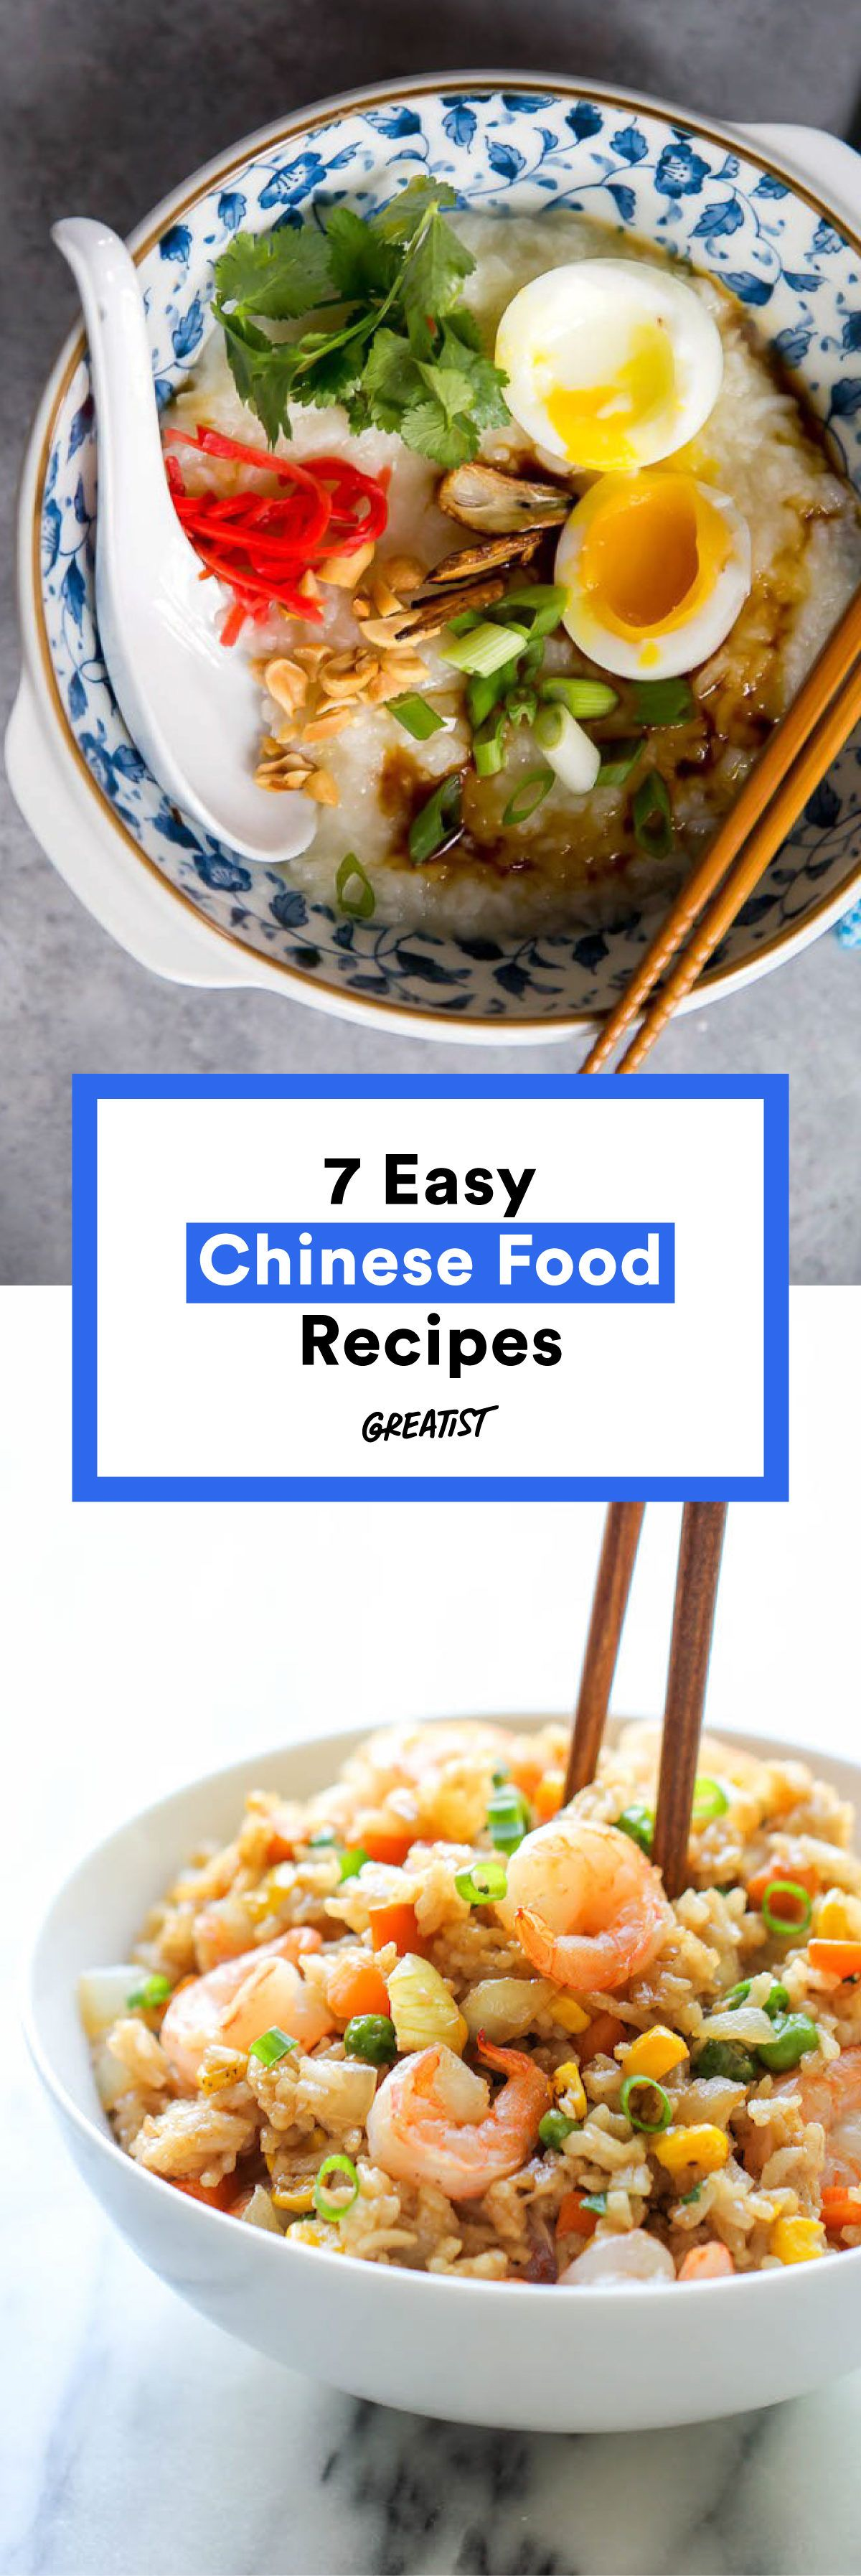 7 easy chinese food recipes so you can give the delivery guy a break 7 easy chinese food recipes so you can give the delivery guy a break forumfinder Choice Image